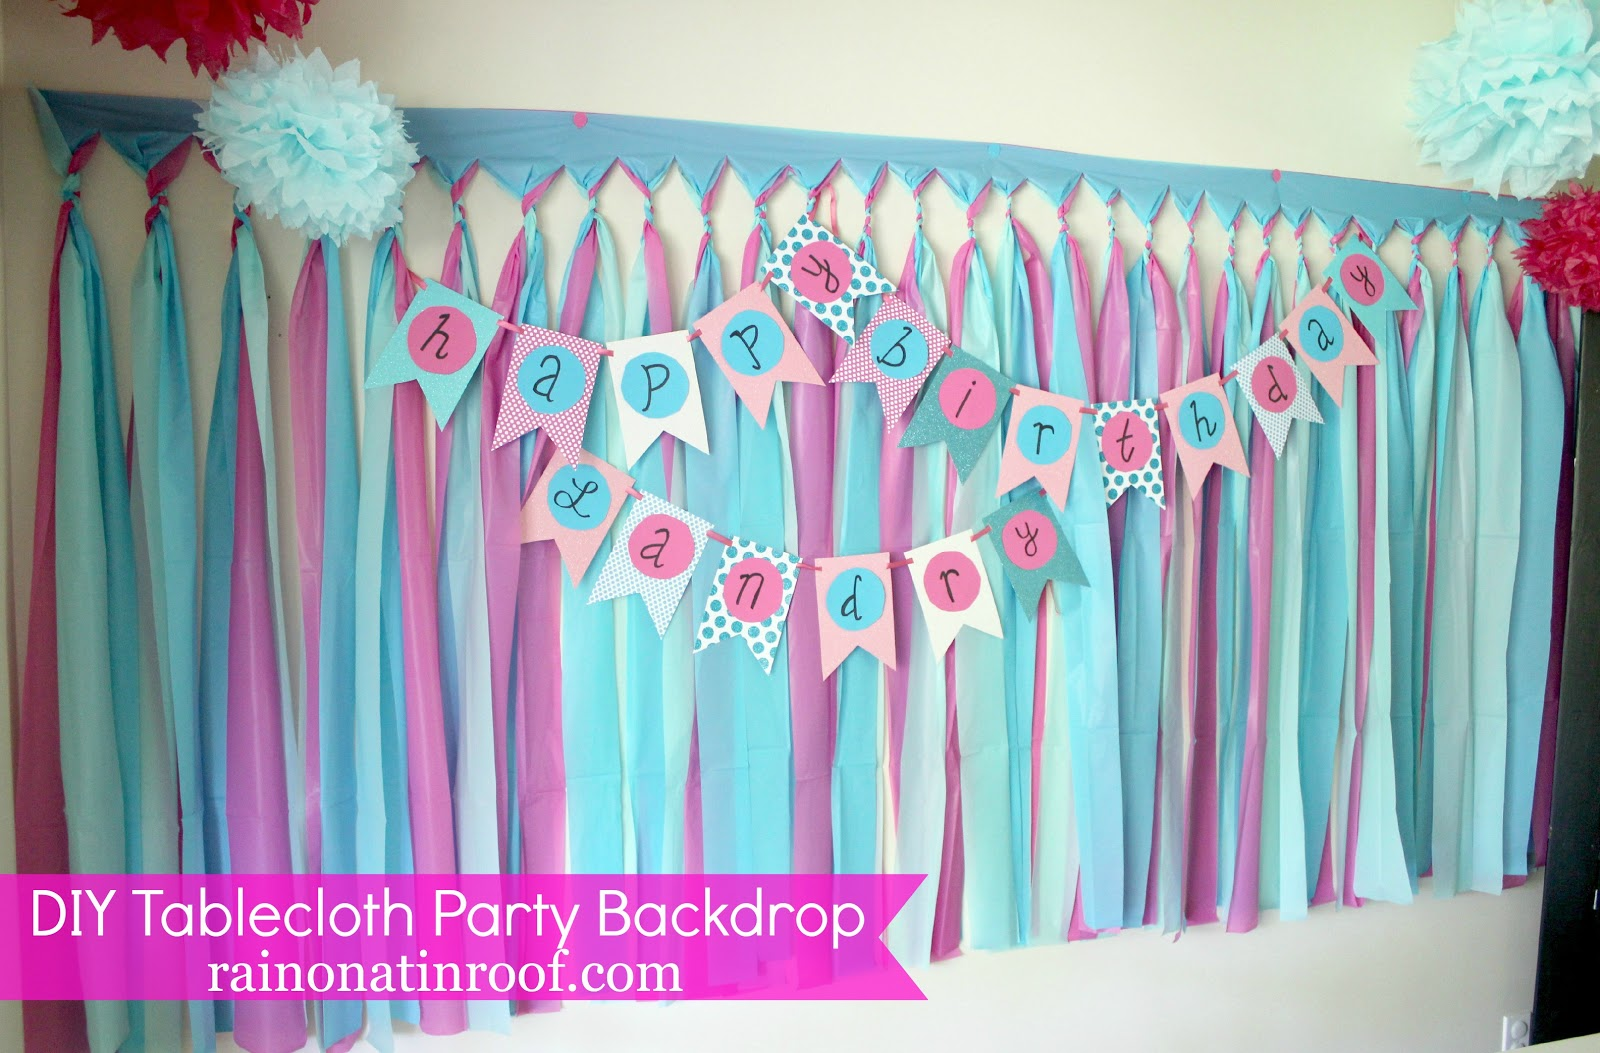 Cheap and Easy Party Background with tablecloths Part 2 Rain on